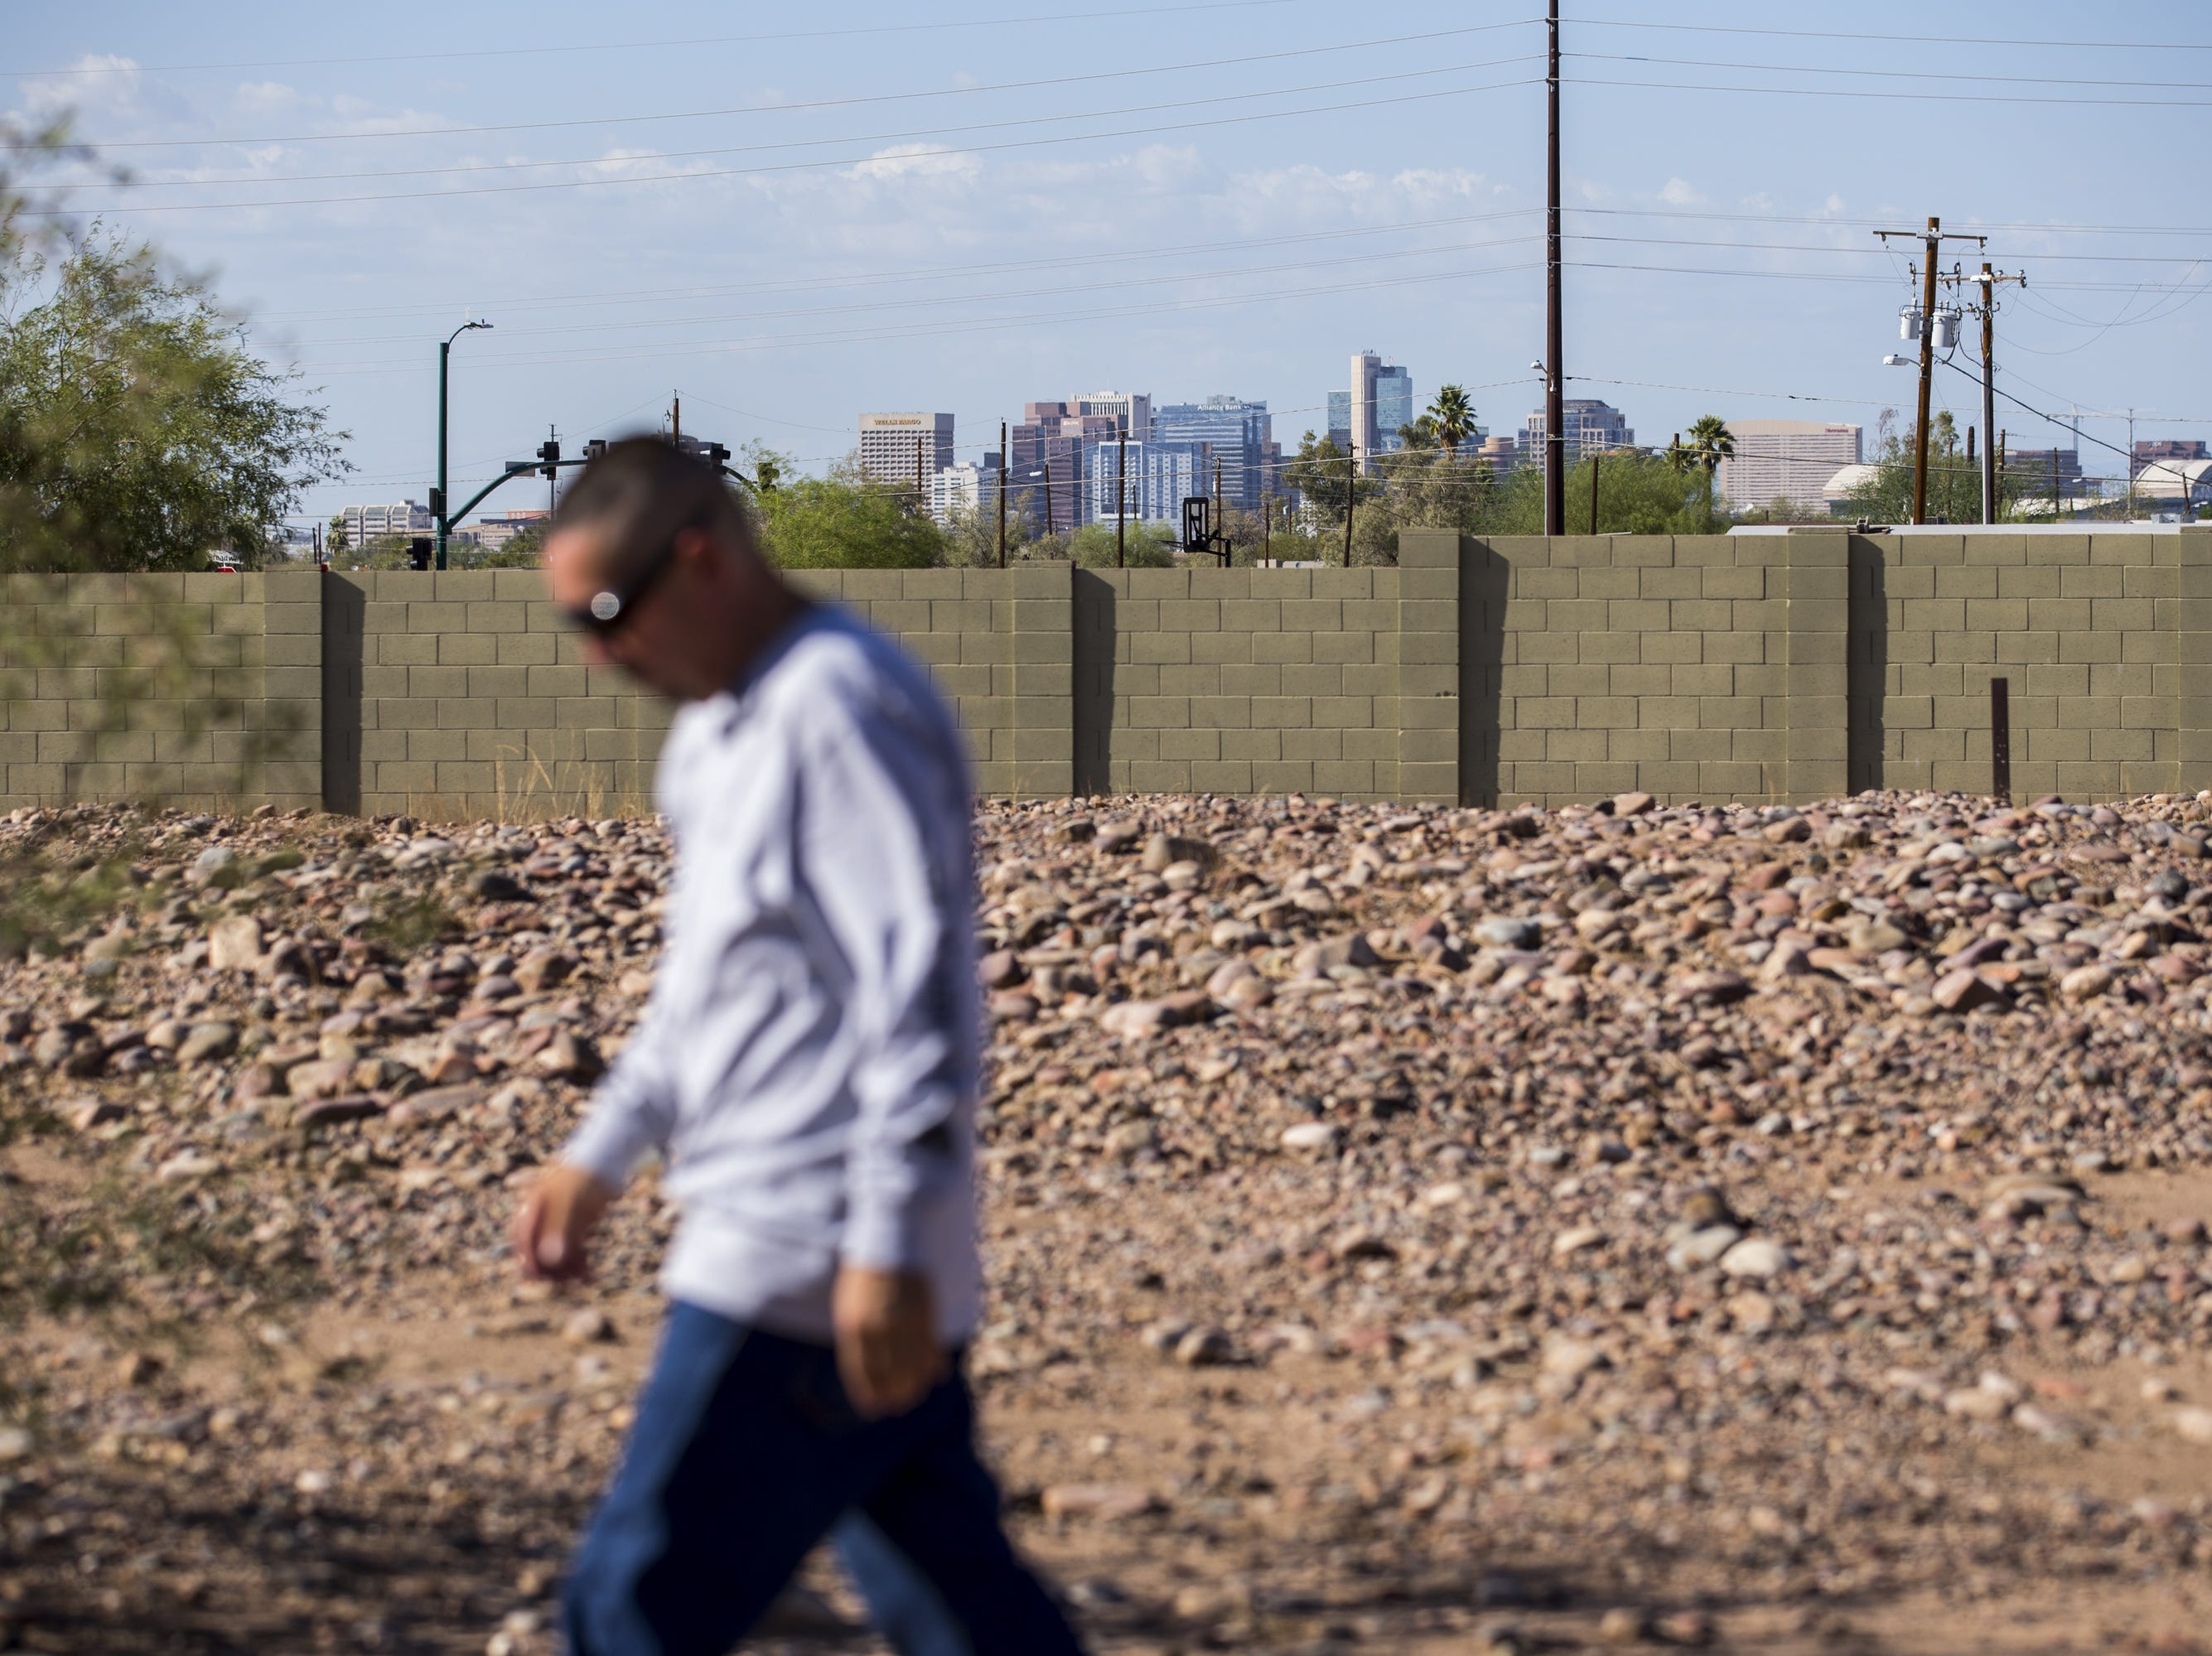 The downtown Phoenix skyline is seen in the distance as Tim Diaz walks in the Sotelo-Heard Cemetery on Sept. 20, 2018, in Phoenix.